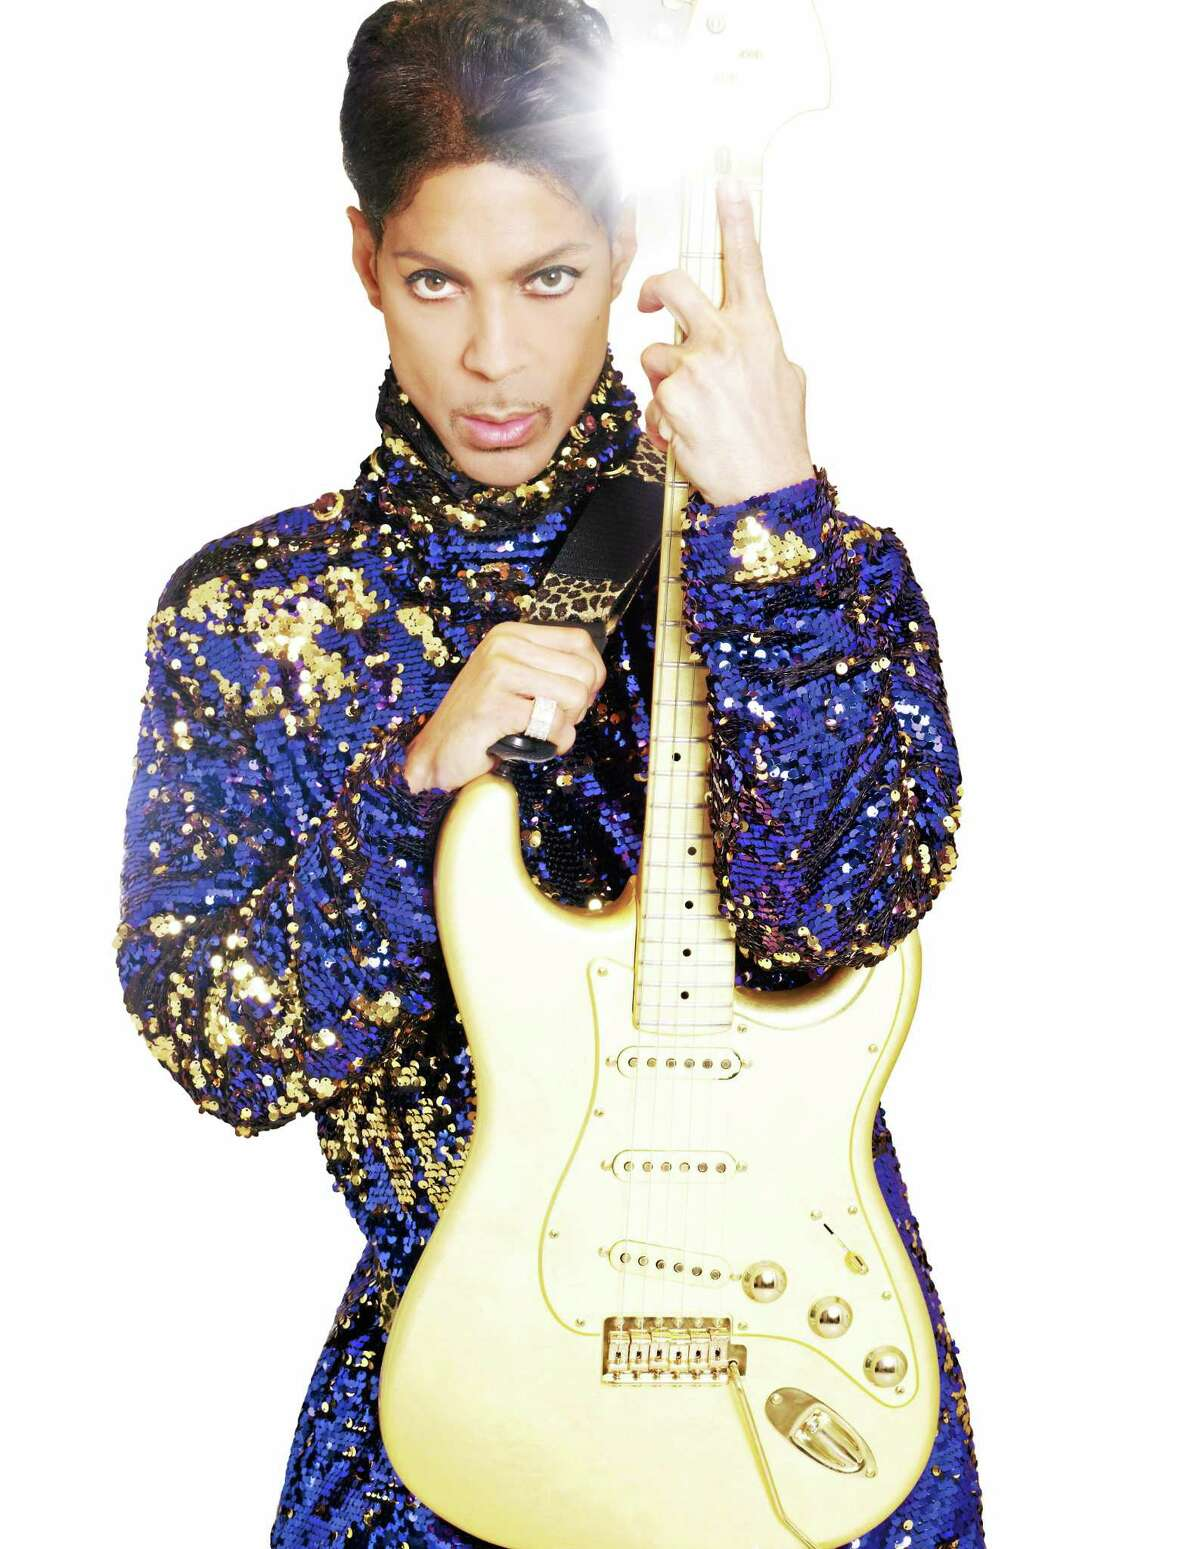 Submitted photo courtesy of Prince Prince is coming to the Mohegan Sun Arena for three shows on Dec. 27, 28 and 29.